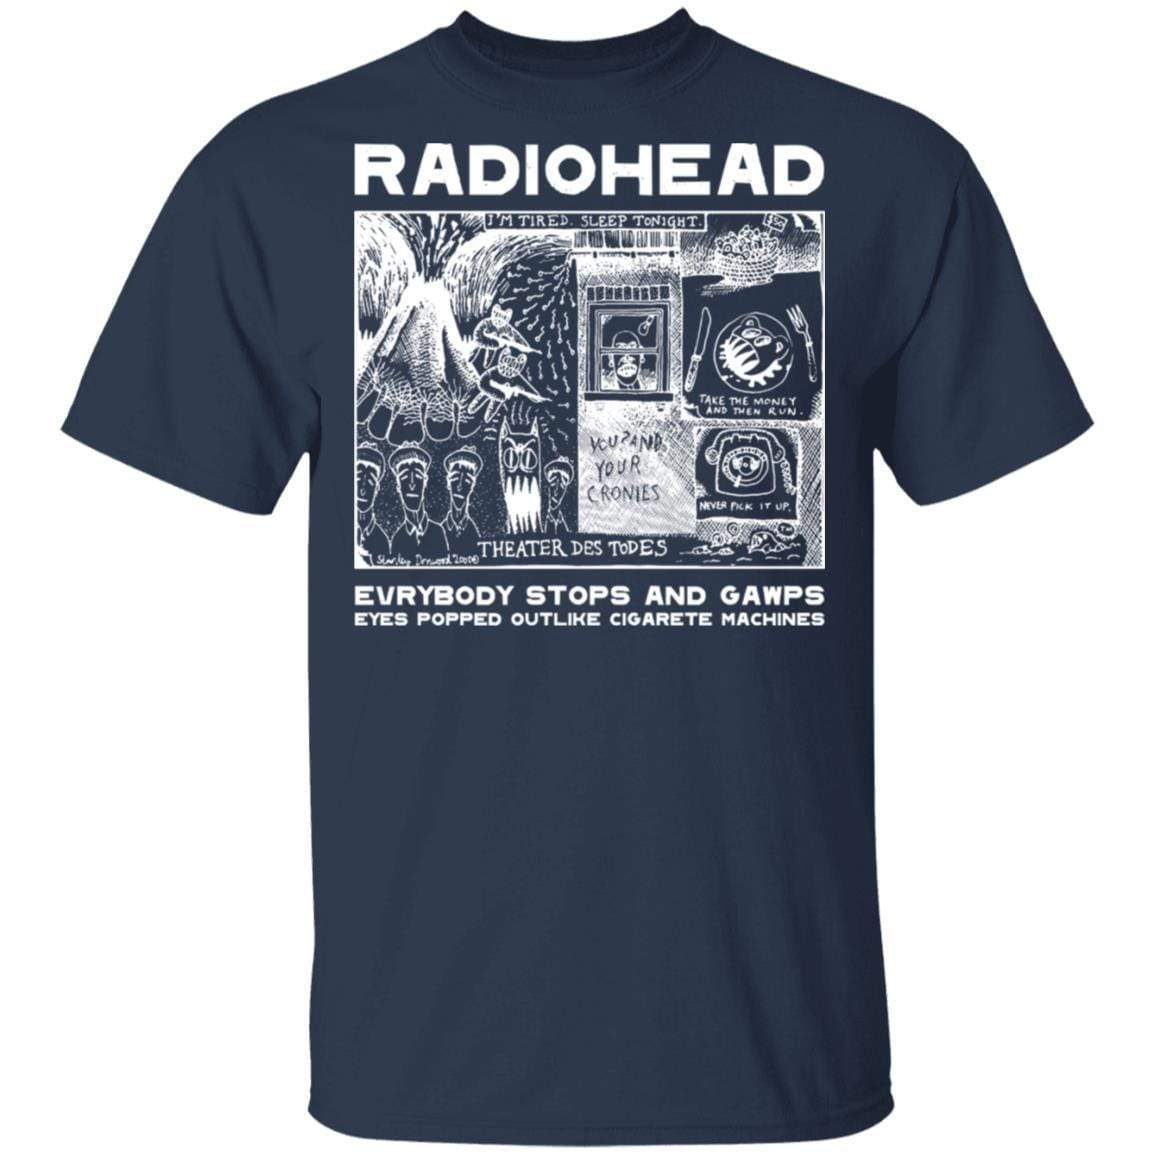 Radiohead Evrybody Stops And Gawps Eyes Popped Outlike Cigarete Machines T-Shirts, Hoodies 1049-9966-87589175-48248 - Tee Ript